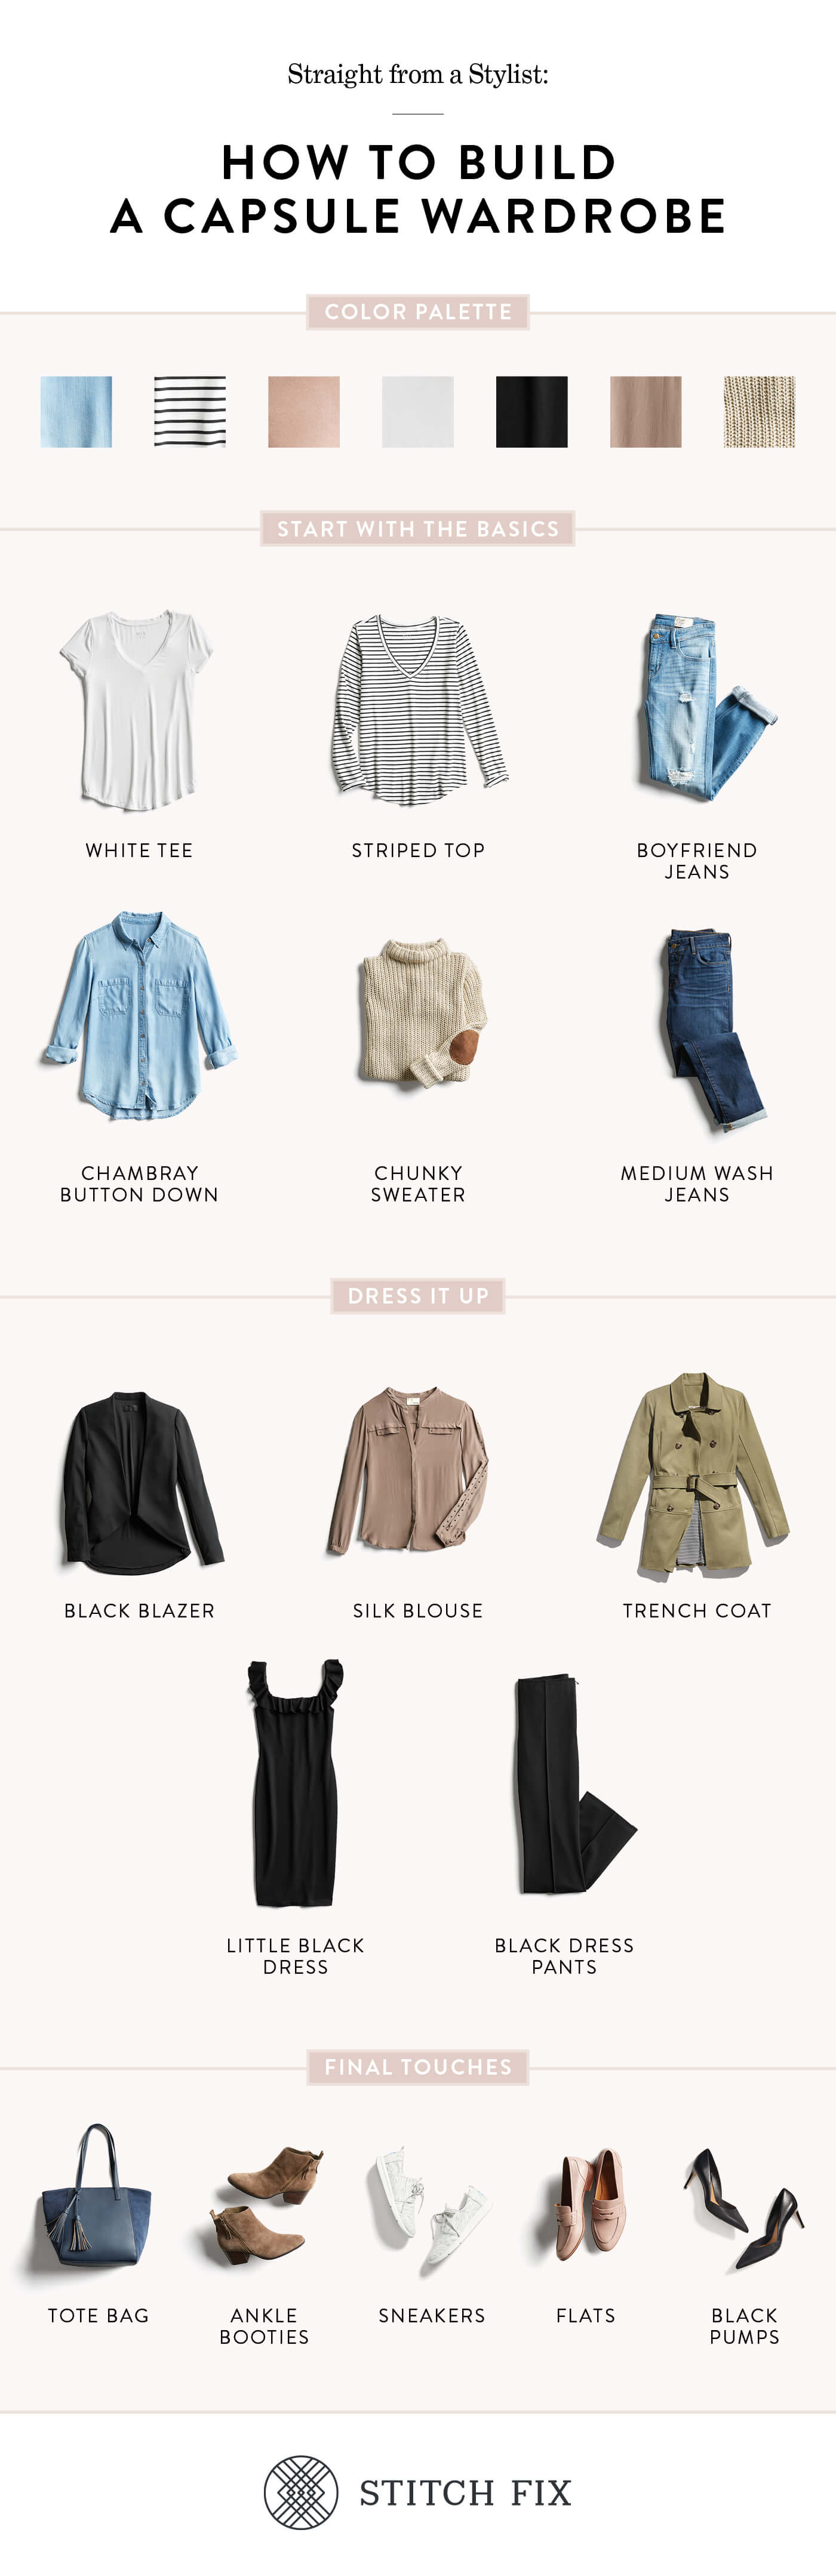 Watch What S A Capsule Wardrobe And How Do You Build